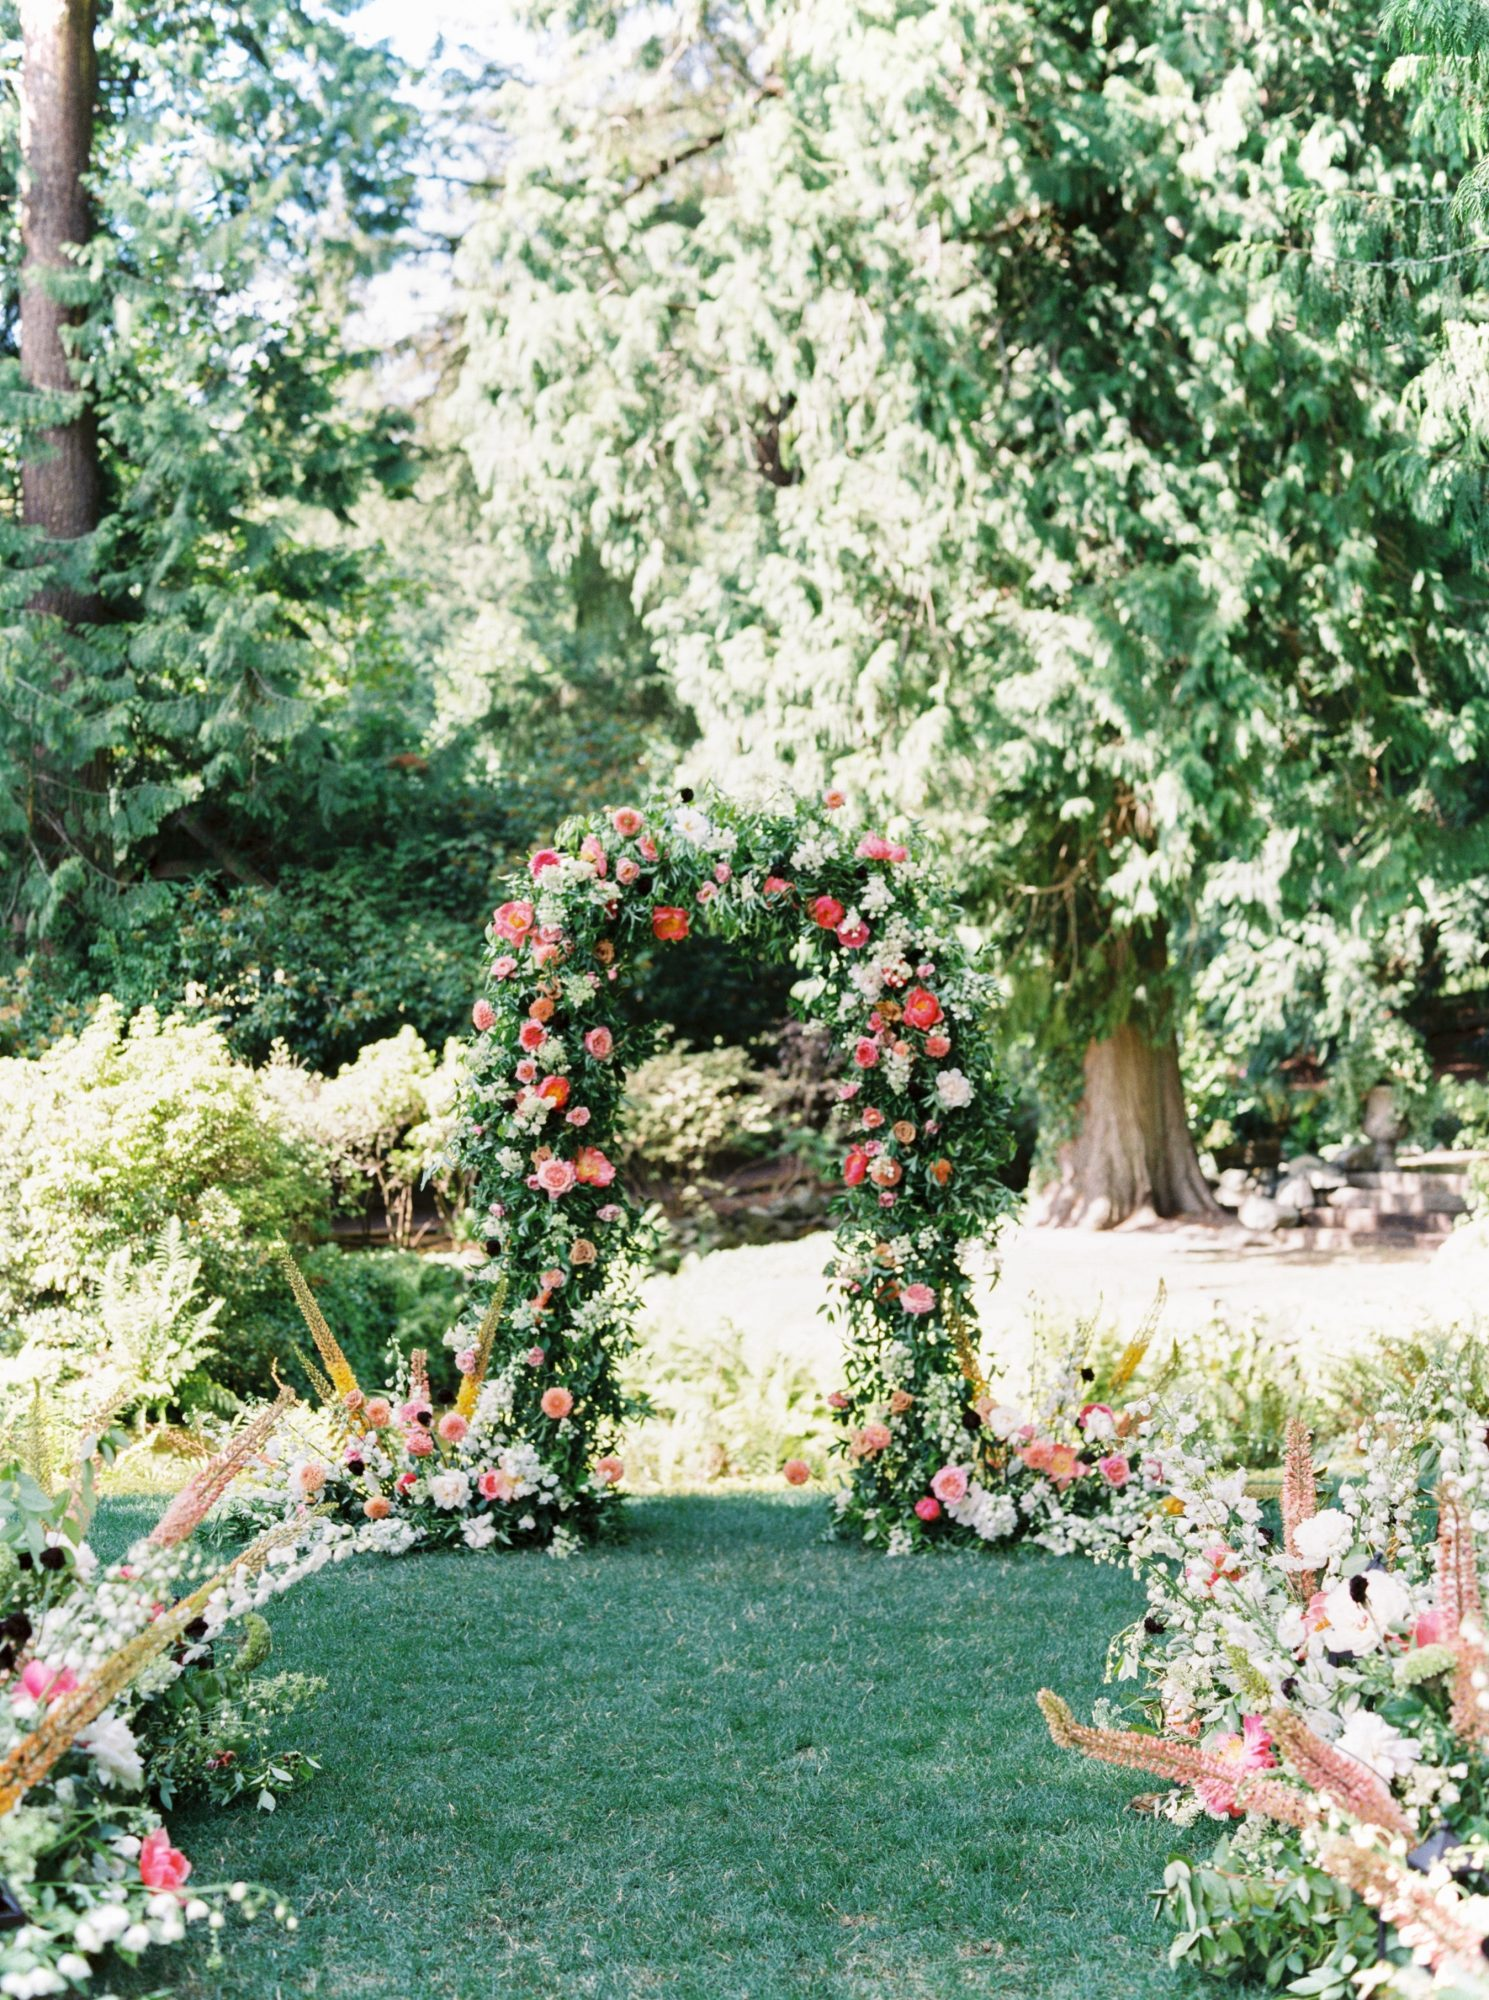 The Floral Arch